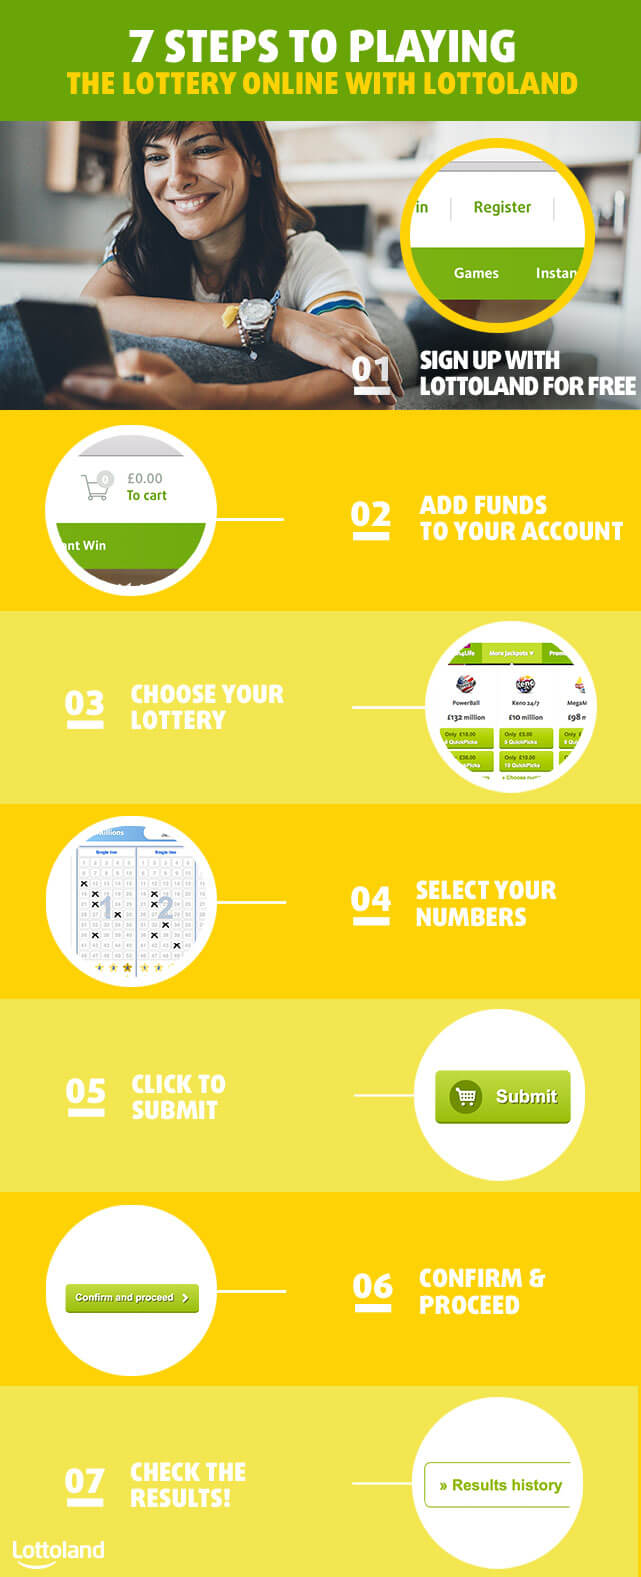 7 steps to betting on the lottery online with Lottoland from Britain